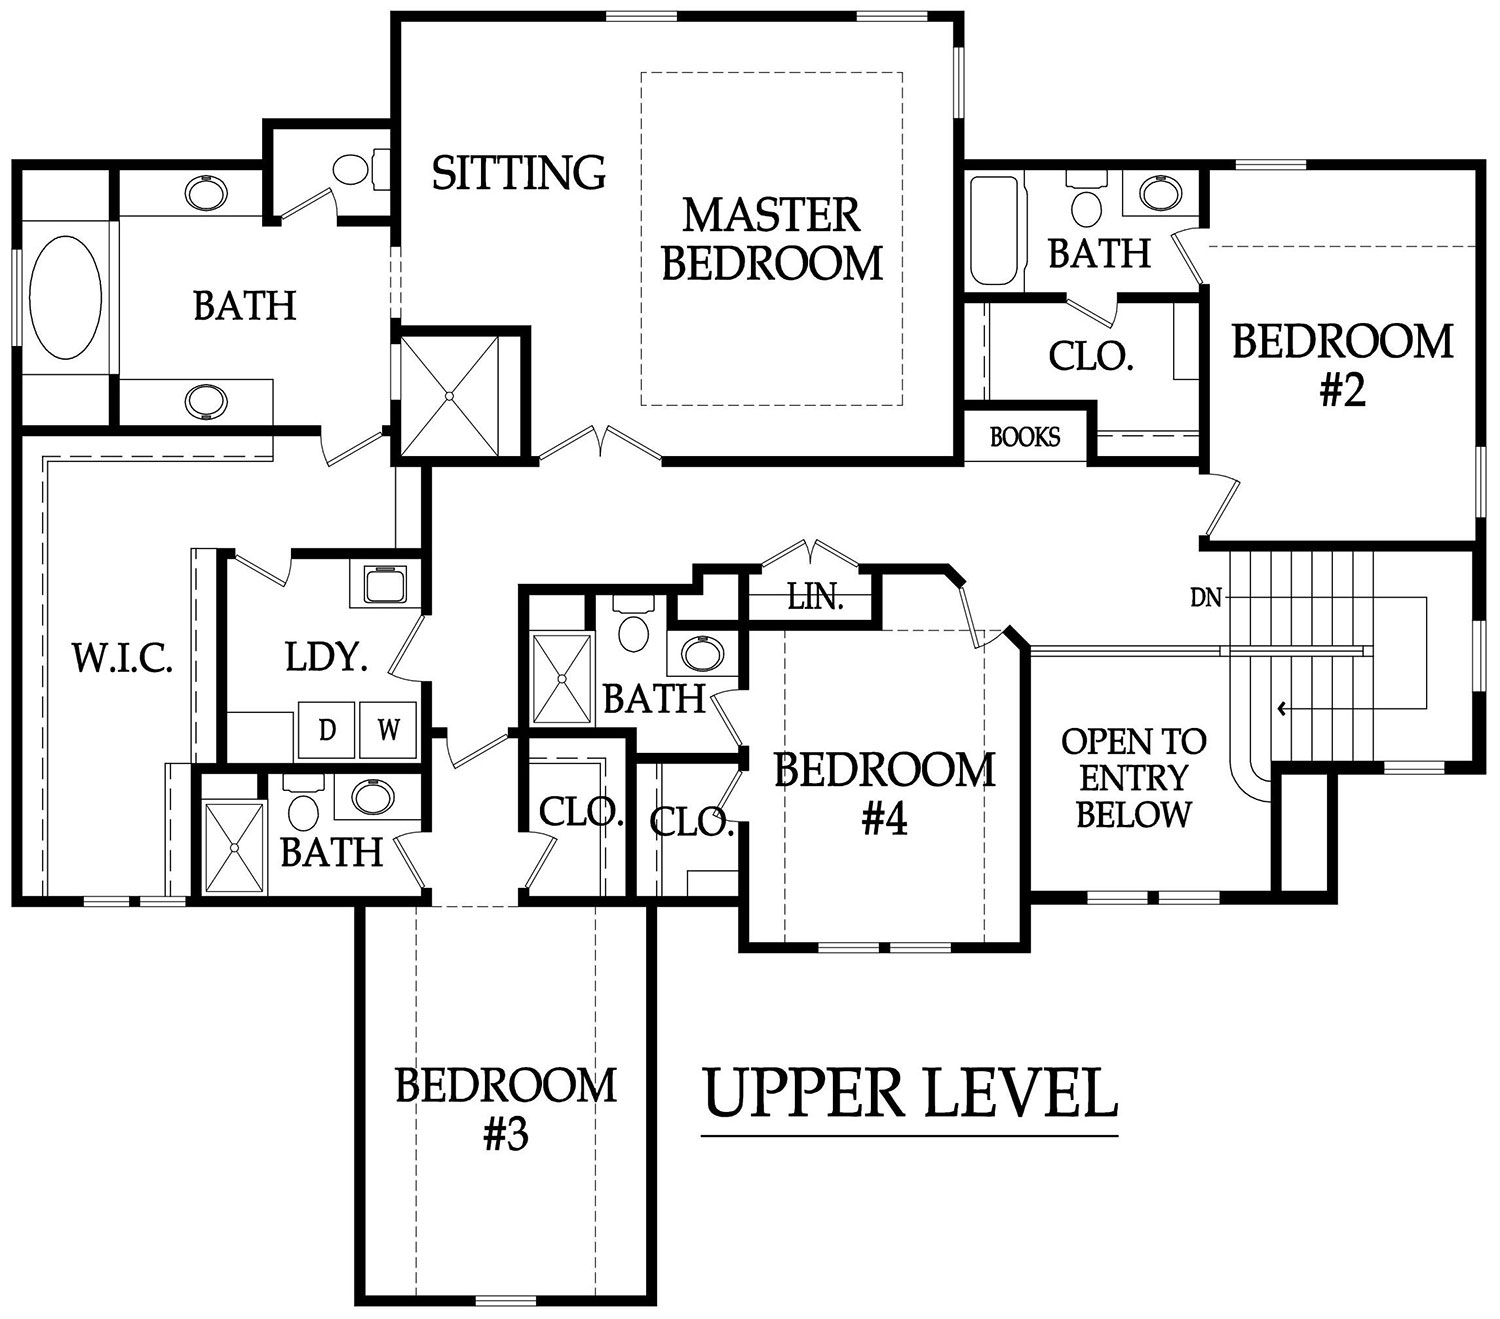 Hepton upper level rendering